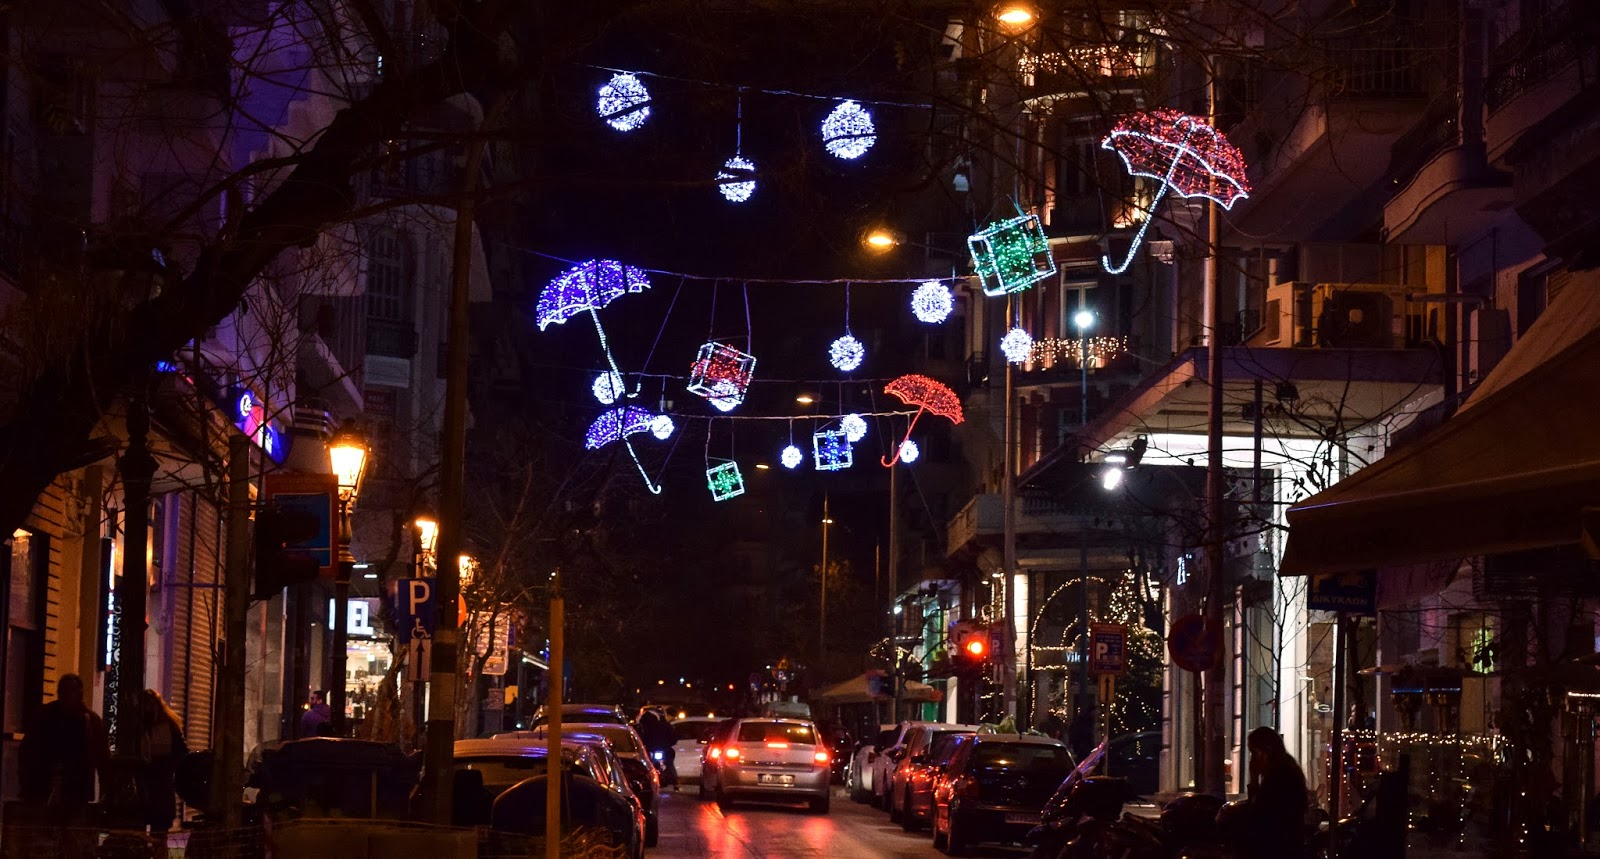 Street decorations - Thessaloniki